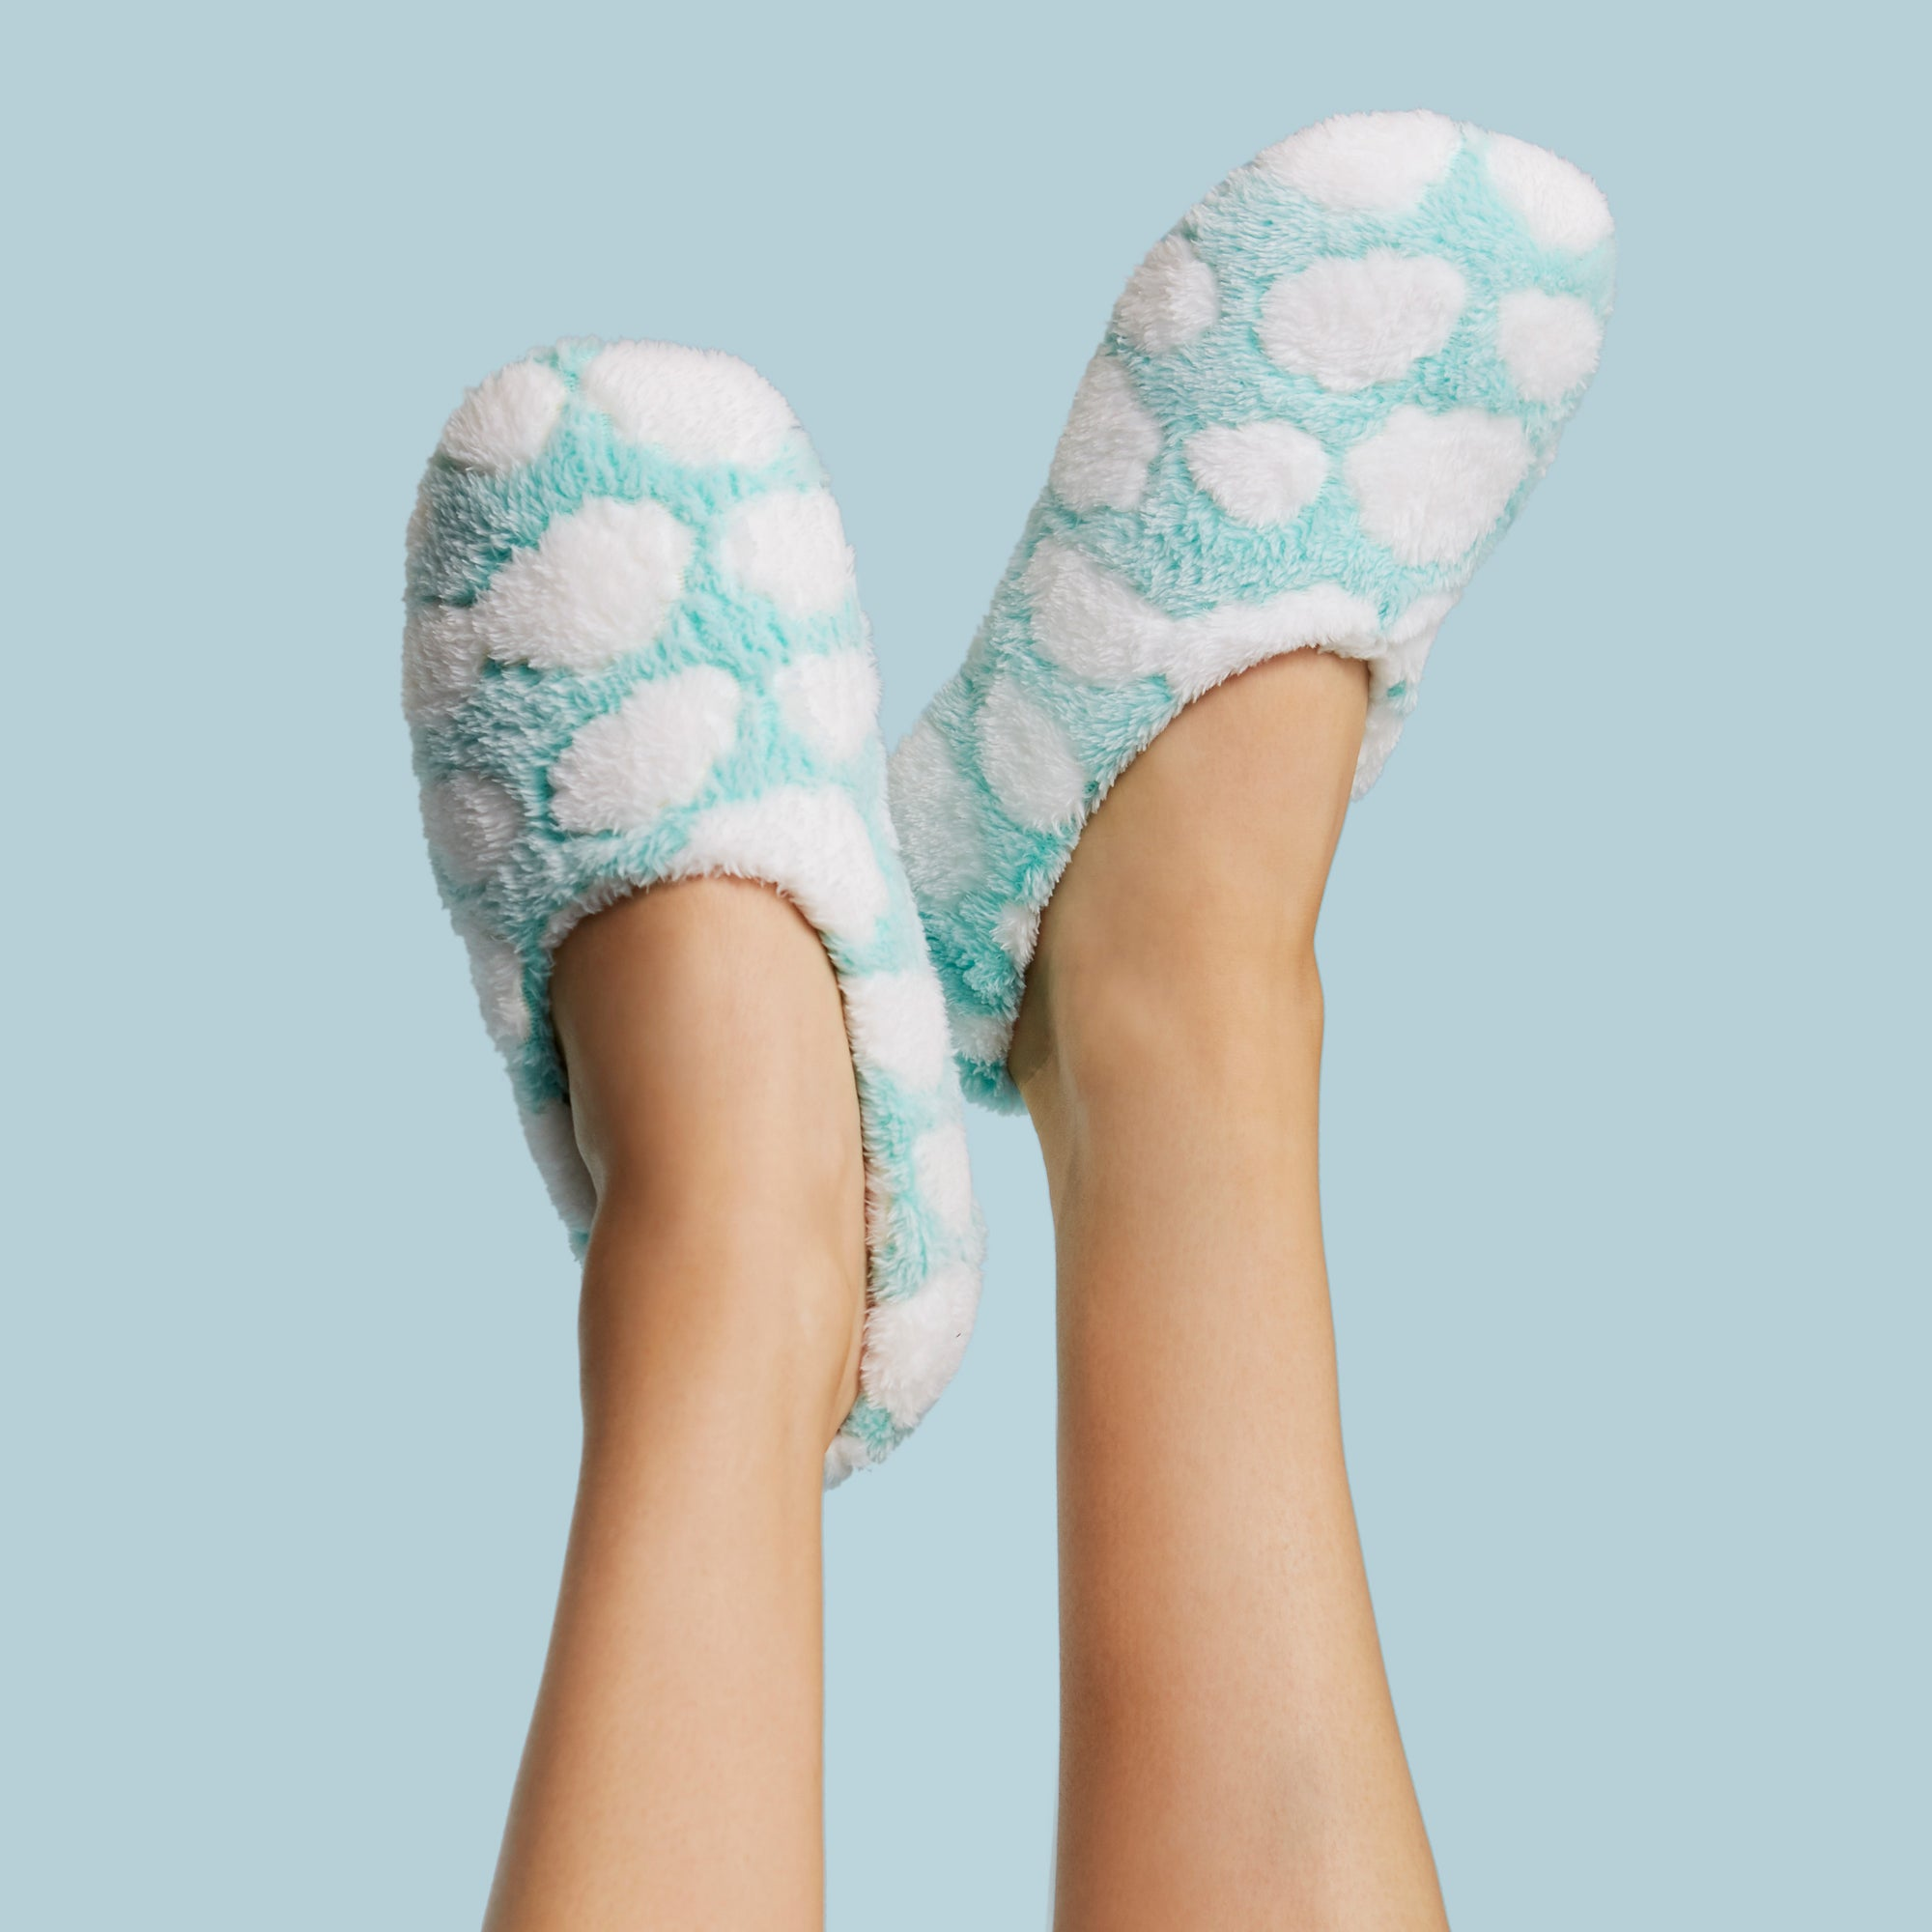 Fluffy Cloud Slippers with Grippers